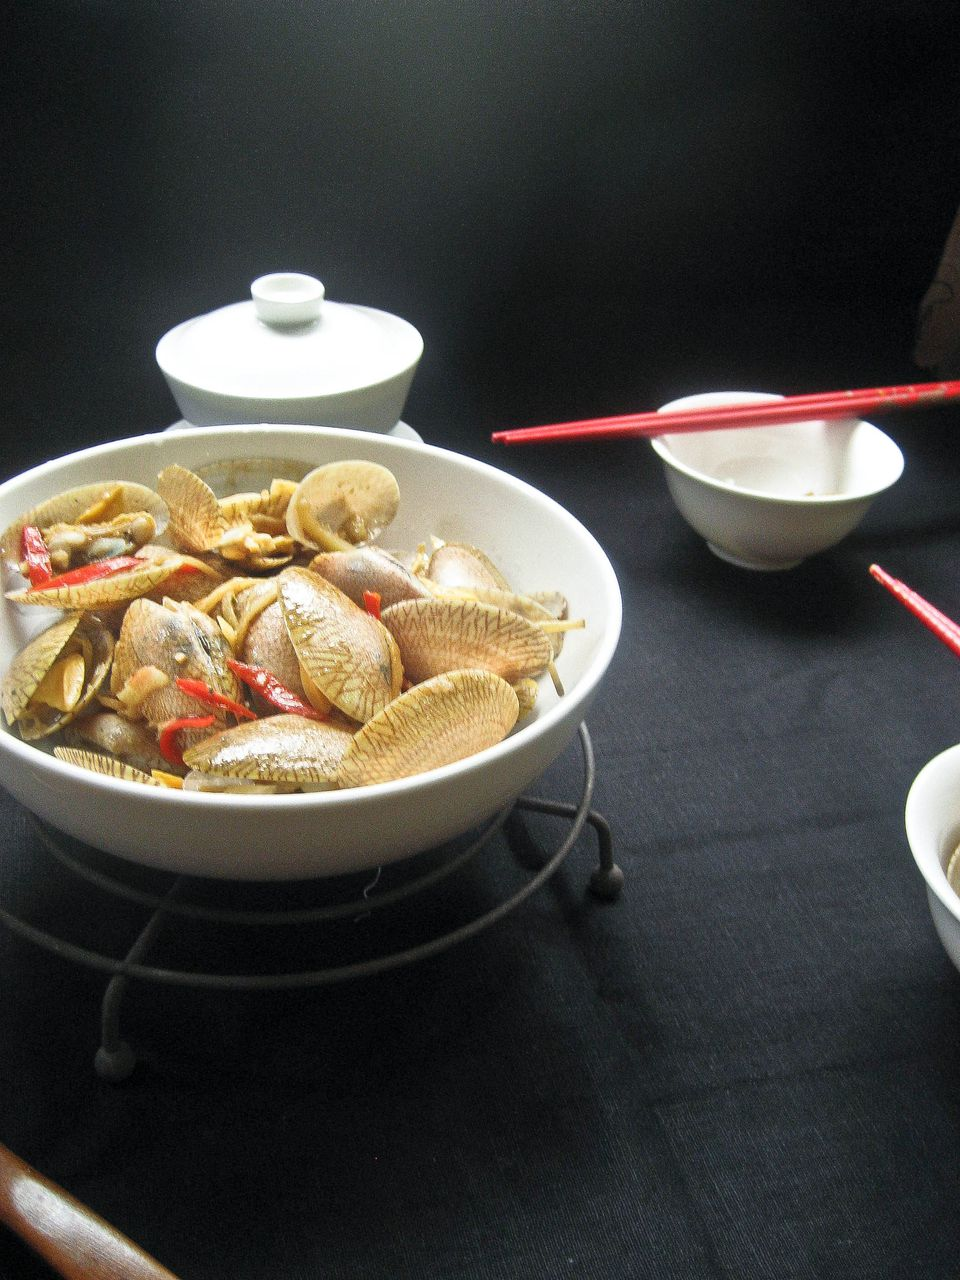 Stir-fried bamboo clams in bean sauce